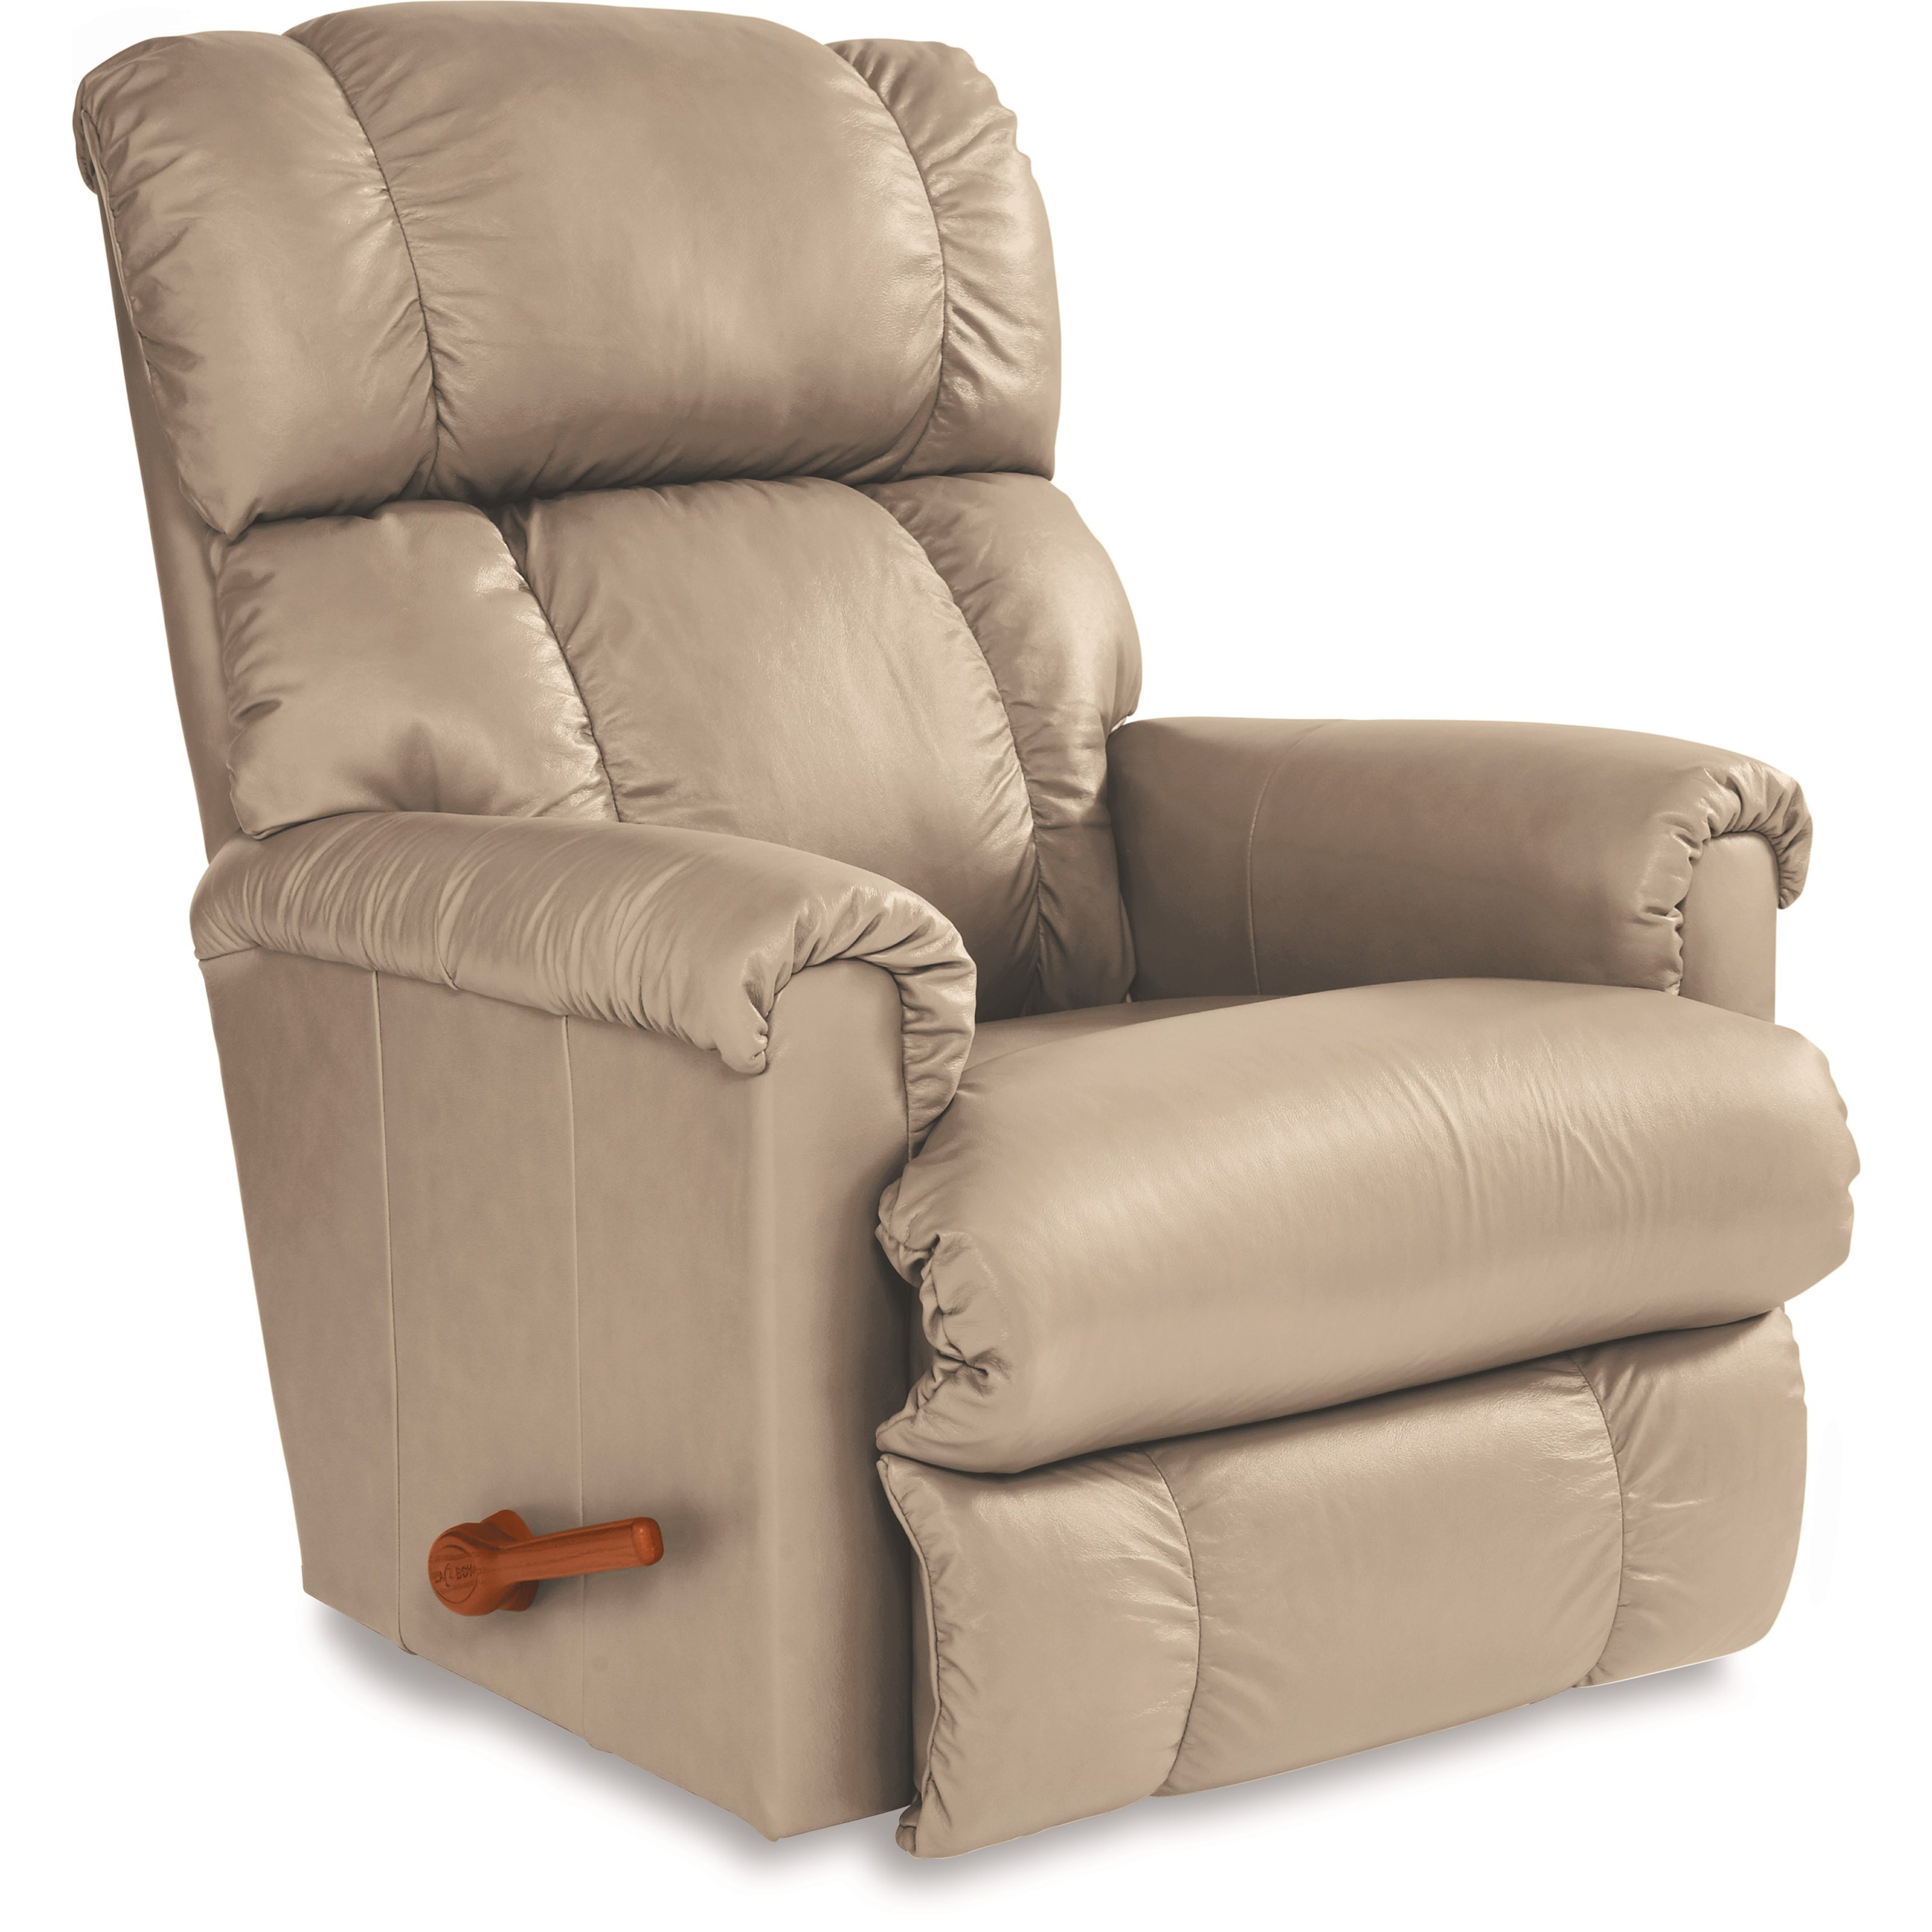 Pinnacle Rocking Recliner by La-Z-Boy at Bennett's Furniture and Mattresses